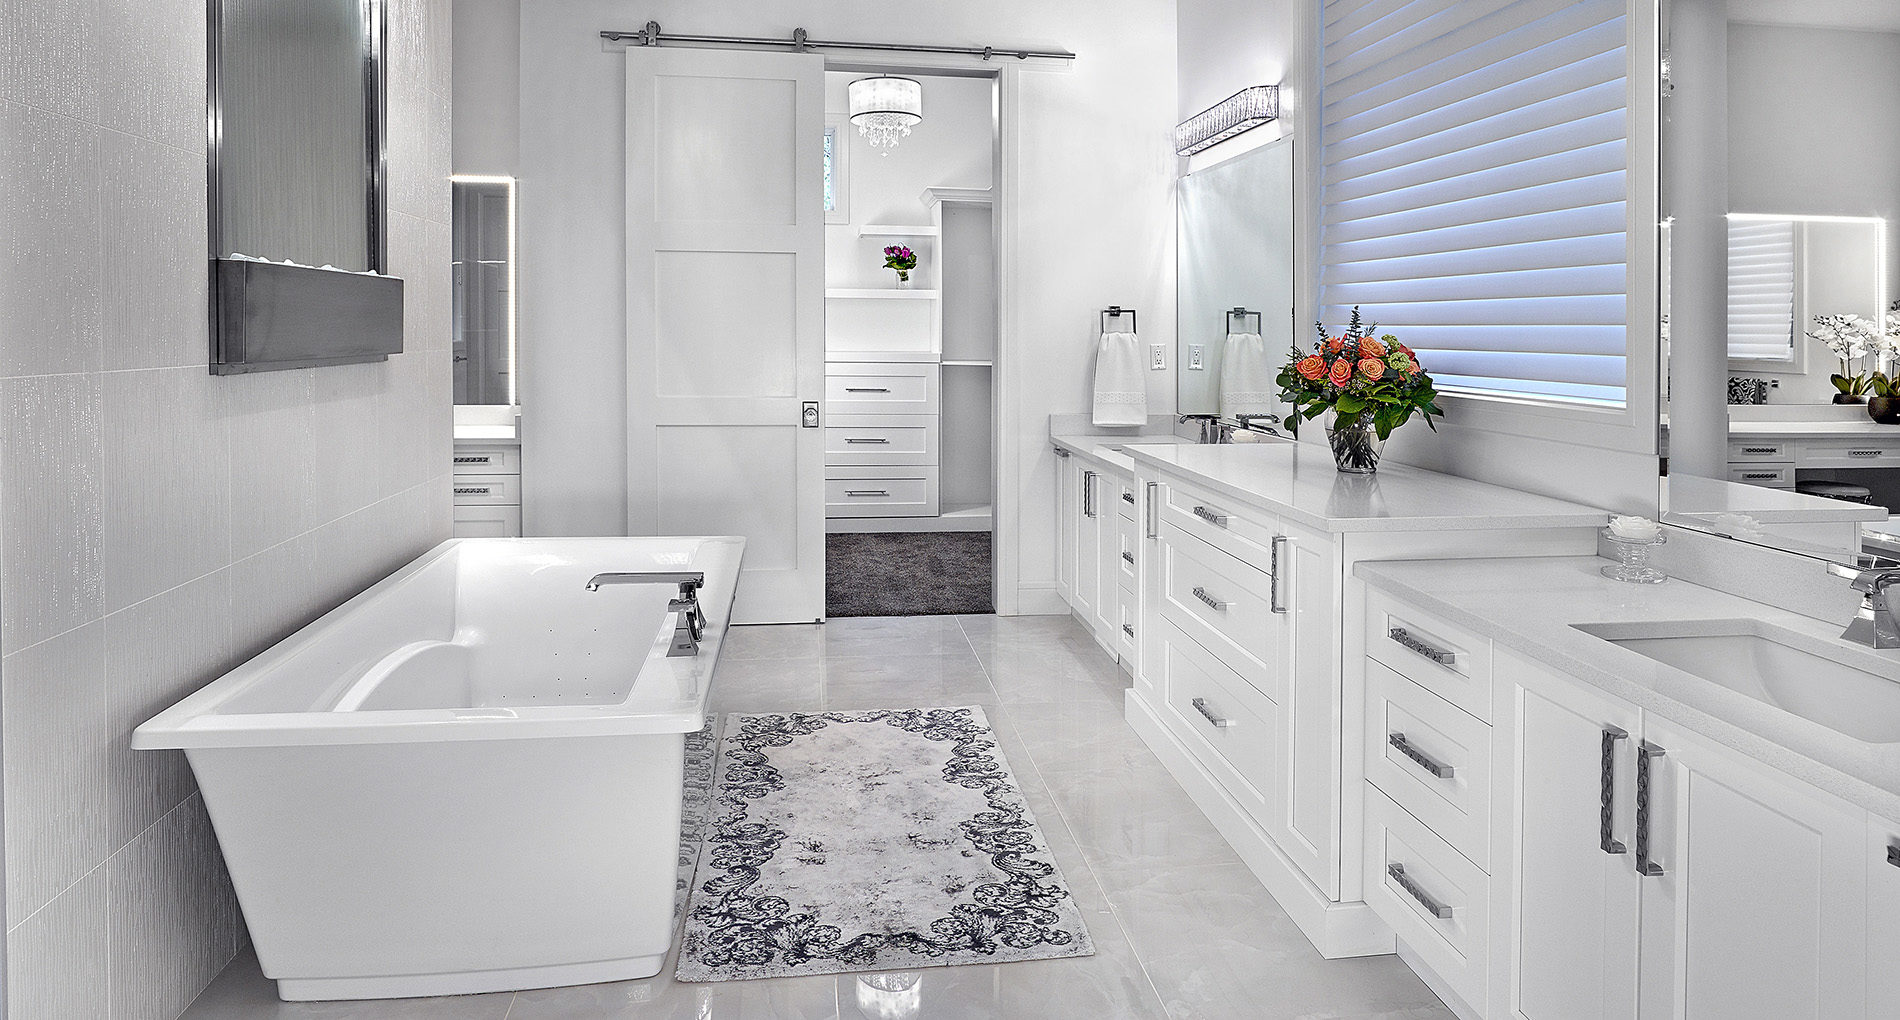 Bathroom Renovations & Design in Rosedale Toronto | Alair Homes